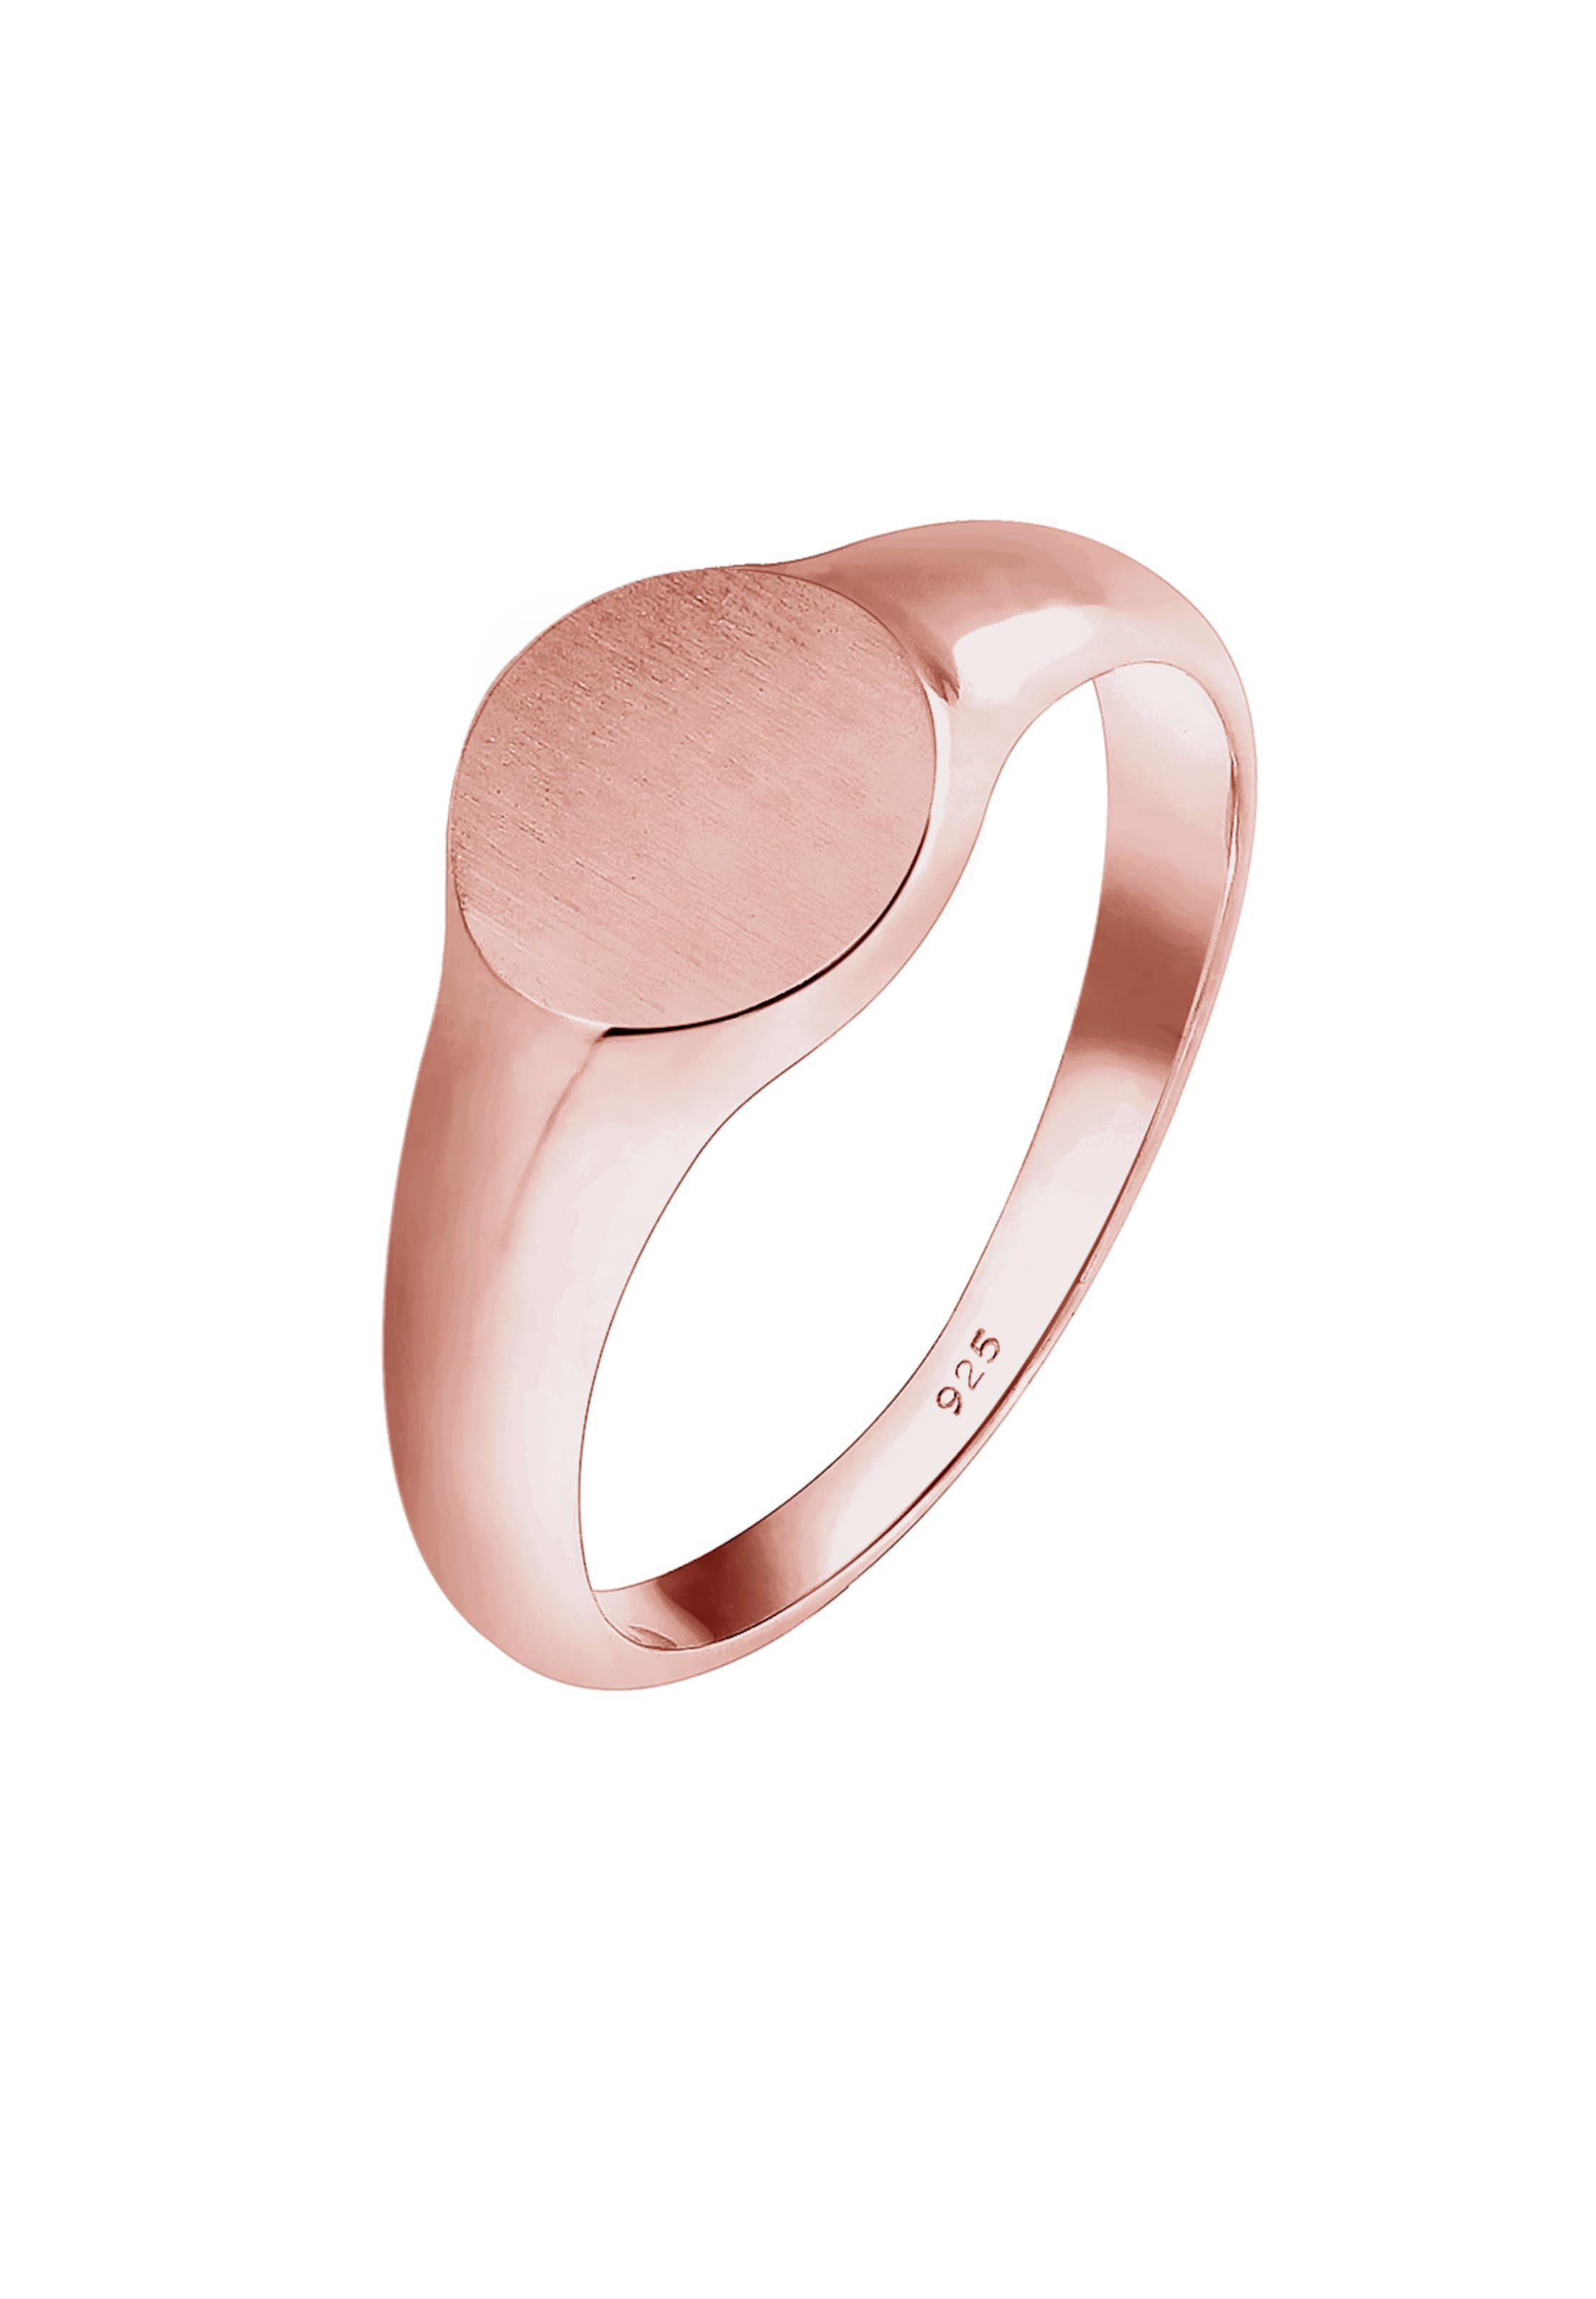 Elli Or Bague Elli Bague En Rose mONn0vw8